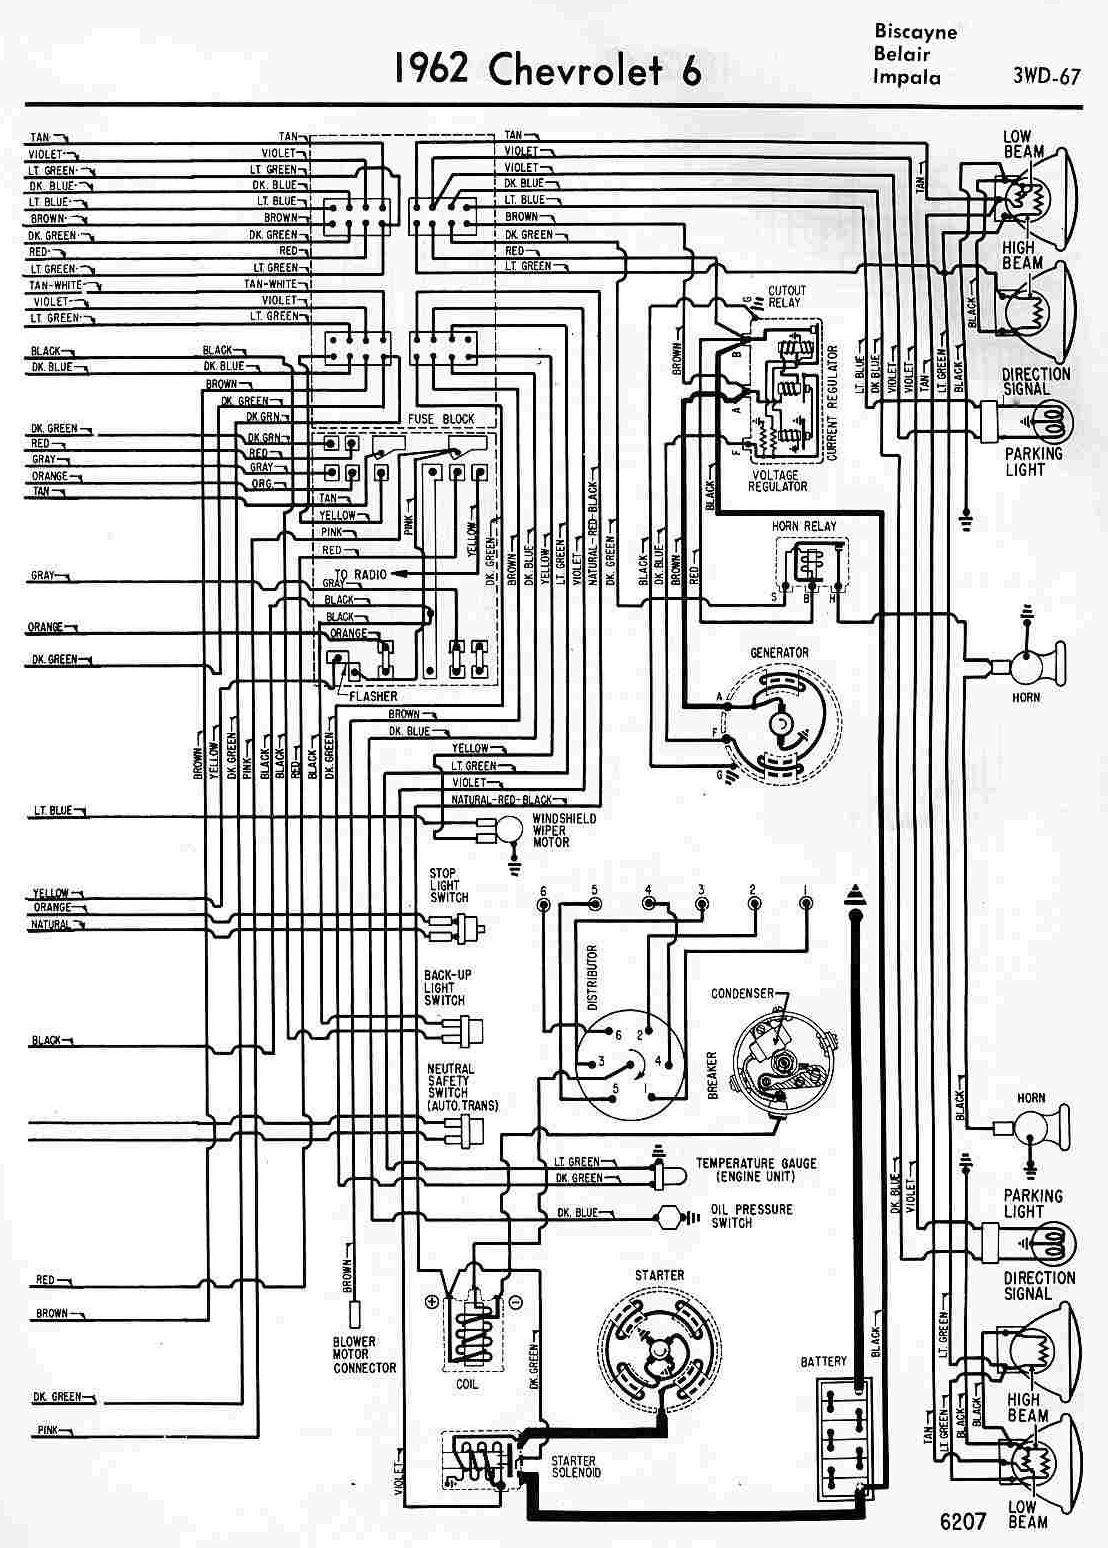 1962 Impala Voltage Regulator Wiring Diagram 44 58 Chevy December 2011 All About Diagrams Chevrolet 6 Biscayne252c Belair And